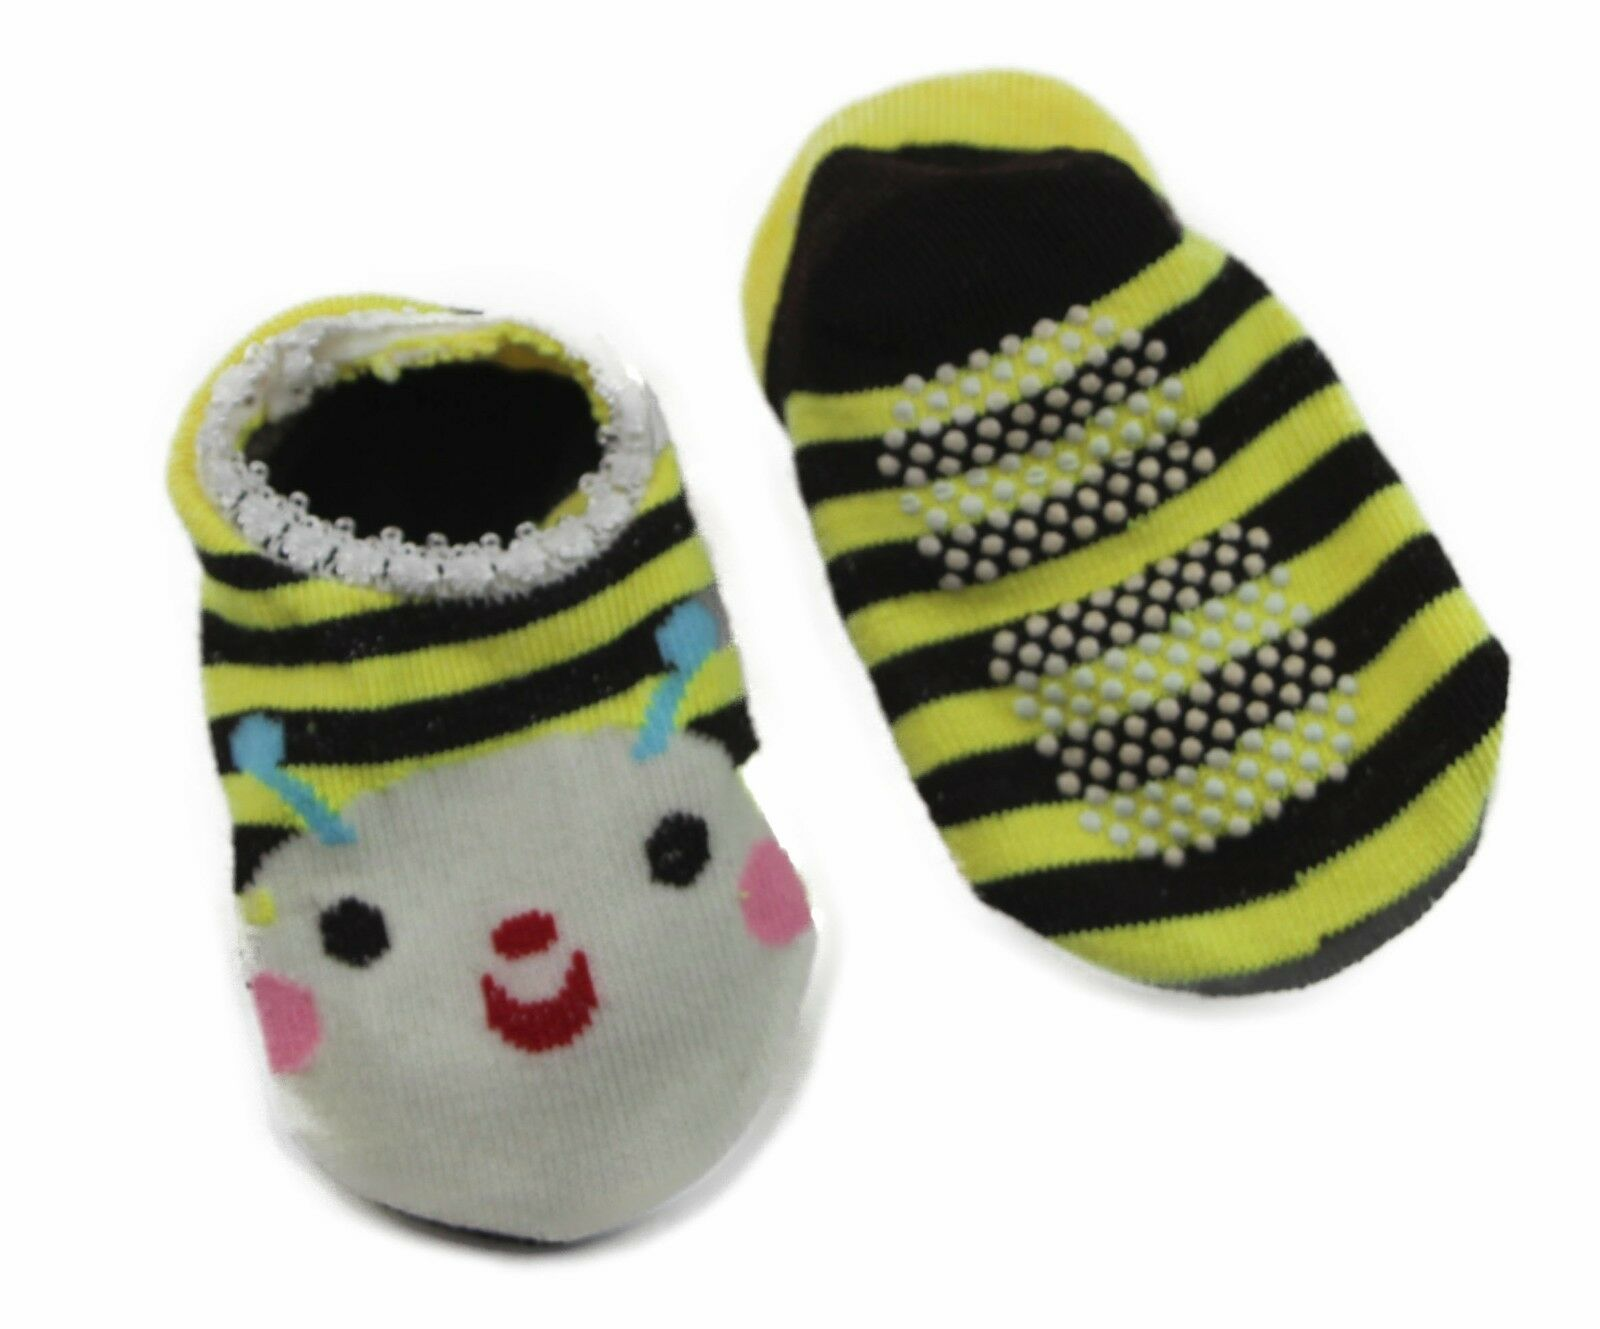 thumbnail 10 - Baby Footlets Kids Toddler Cotton Socks Anti Slip Grip Boys Girls 6-18 Months